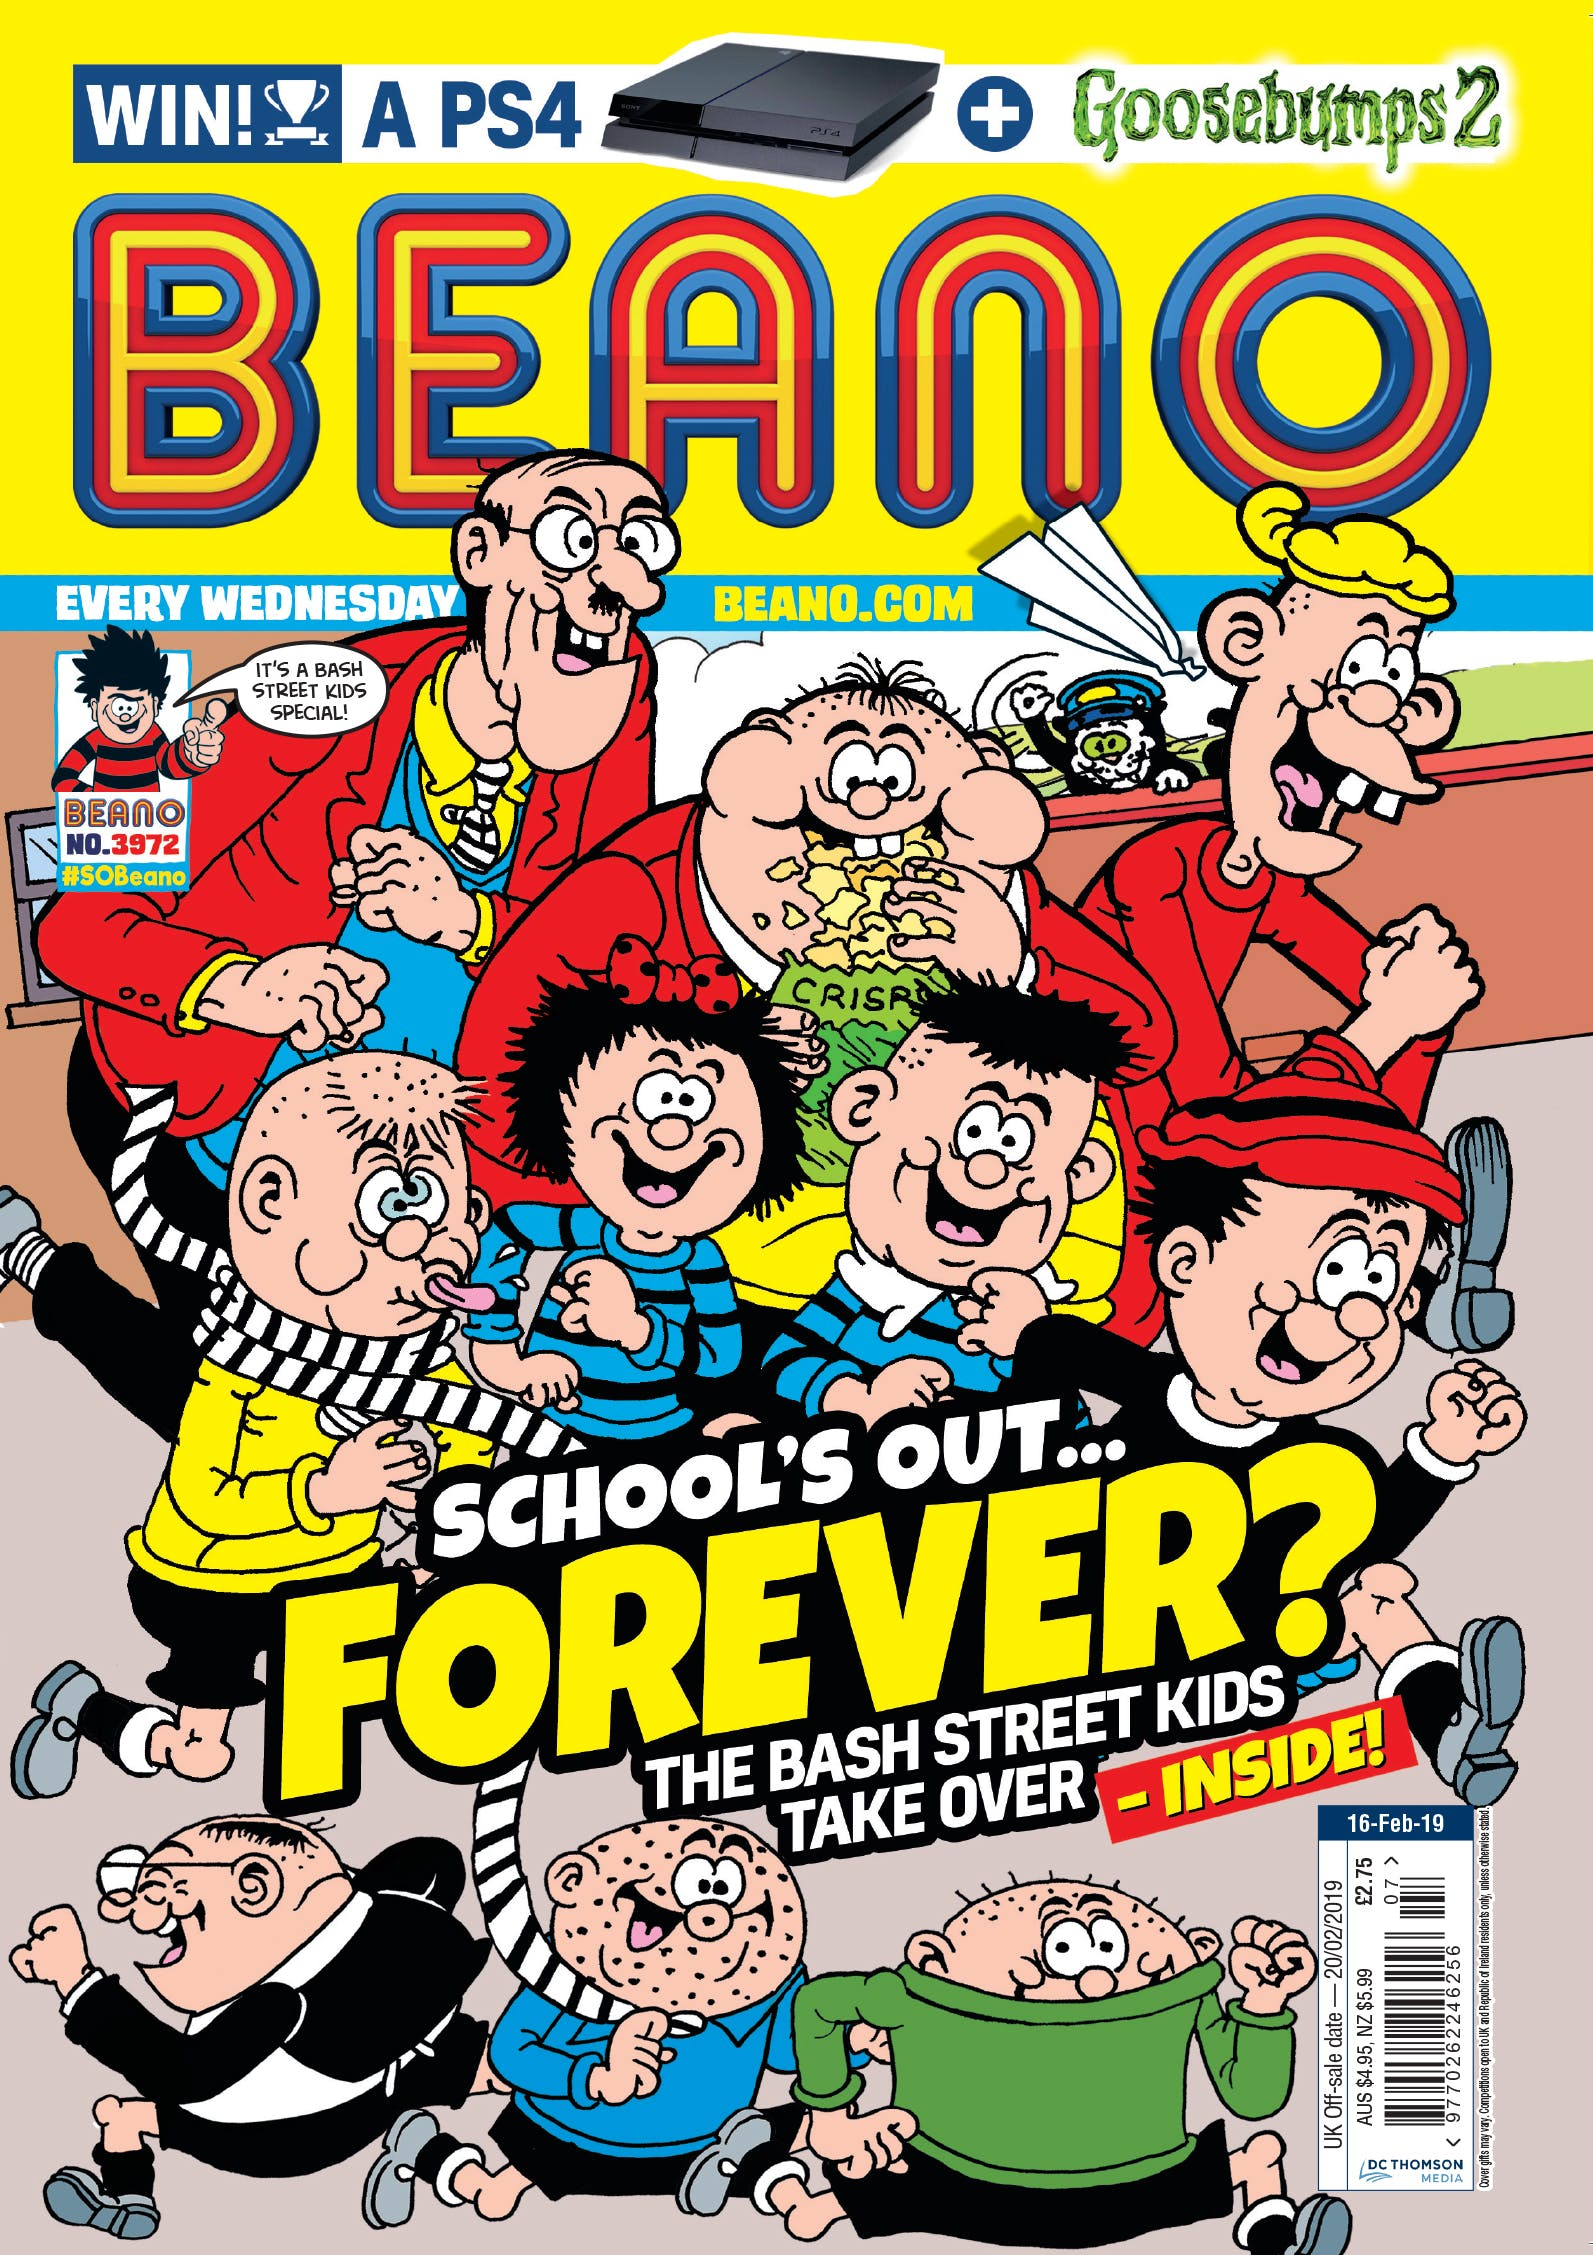 Beano no. 3972. School's out... forever?